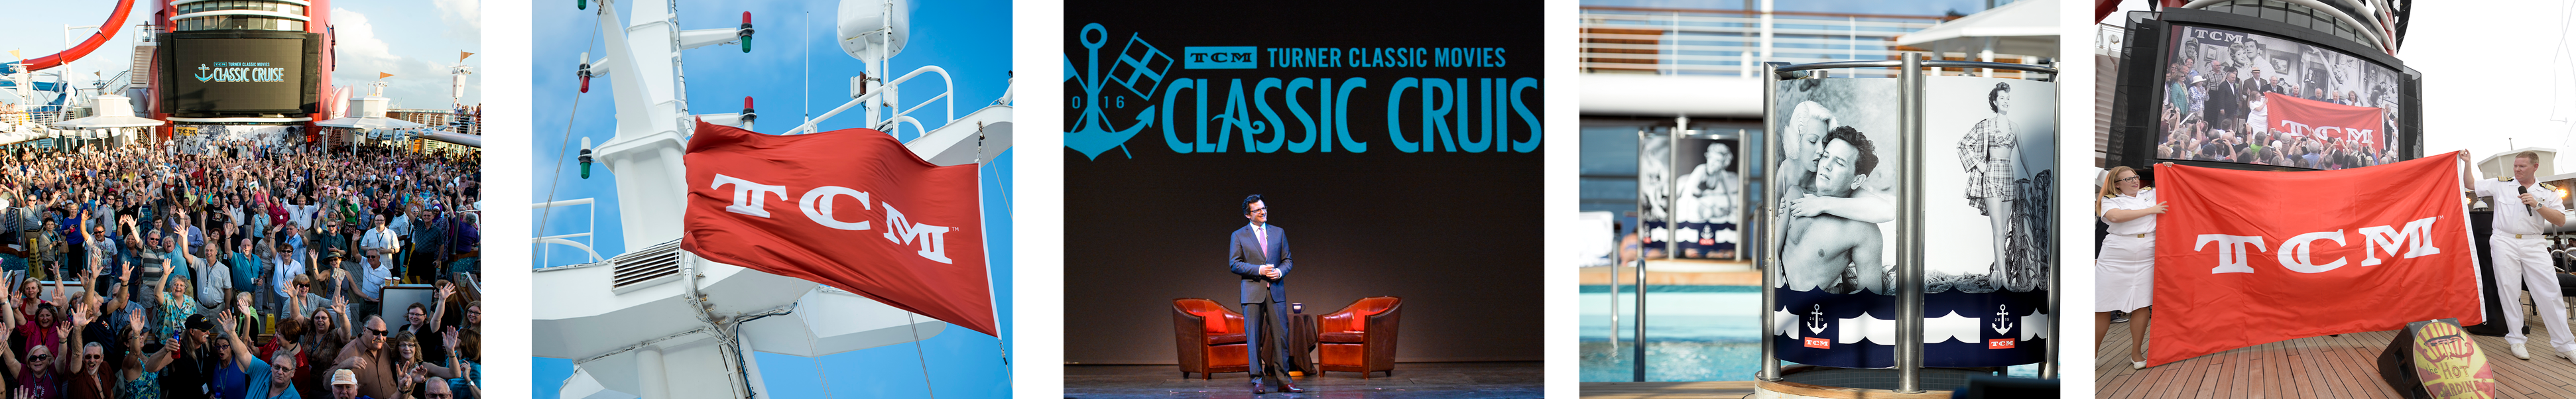 Images from TCM Classic Cruise